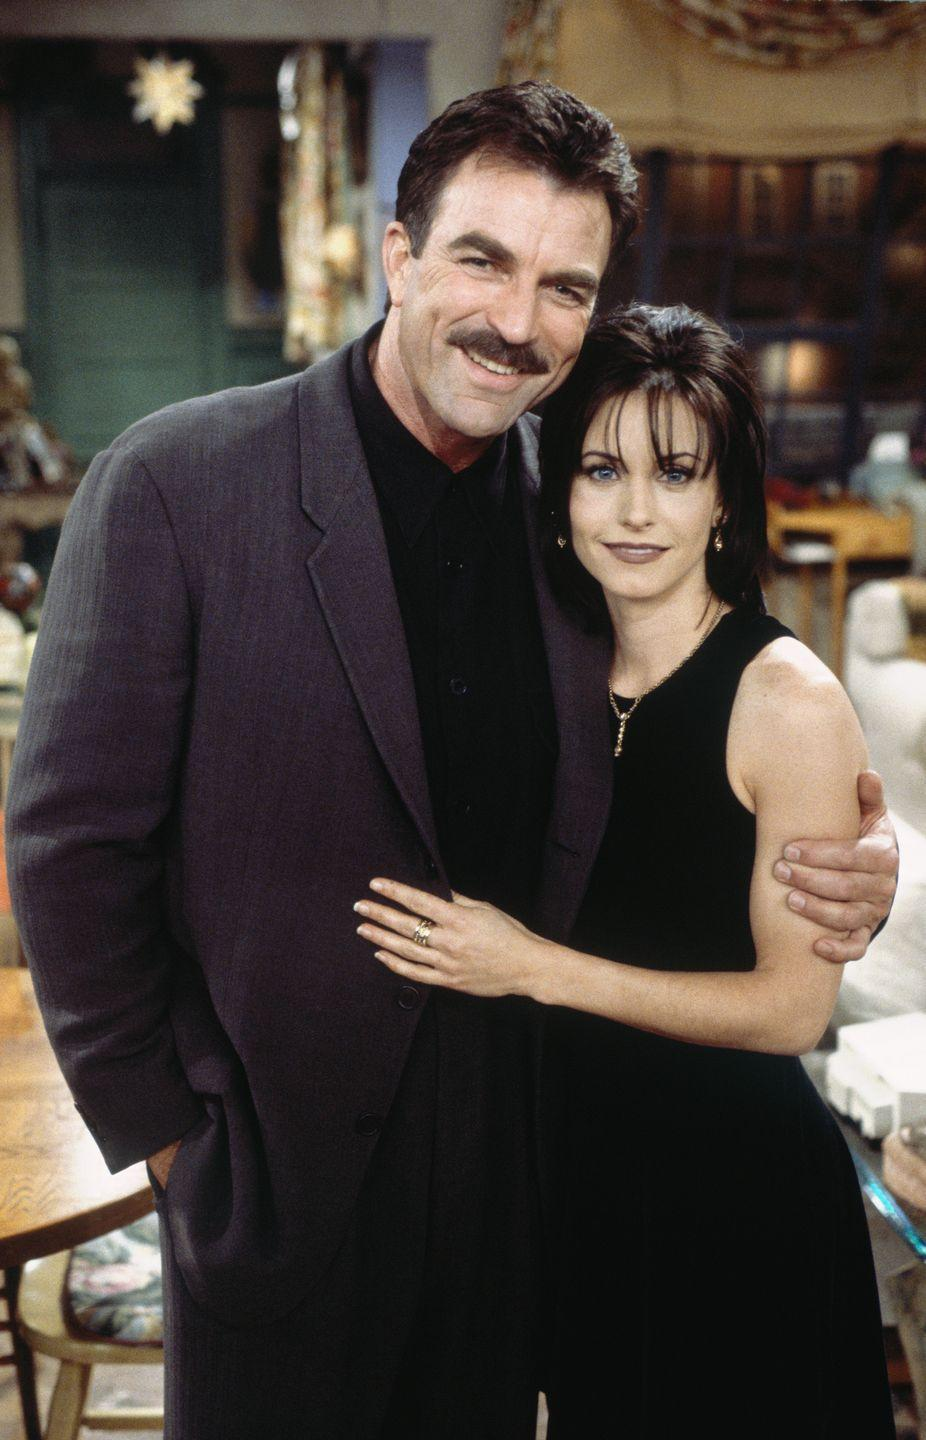 <p>Although the role of Richard Burke, Monica's on-again, off-again older boyfriend, is one of Tom's most notable roles, the actor had an established career before joining<em>—</em>Tom (and his mustache!) was a household name thanks to his role in the '80s show <em>Magnum P.I. </em></p>